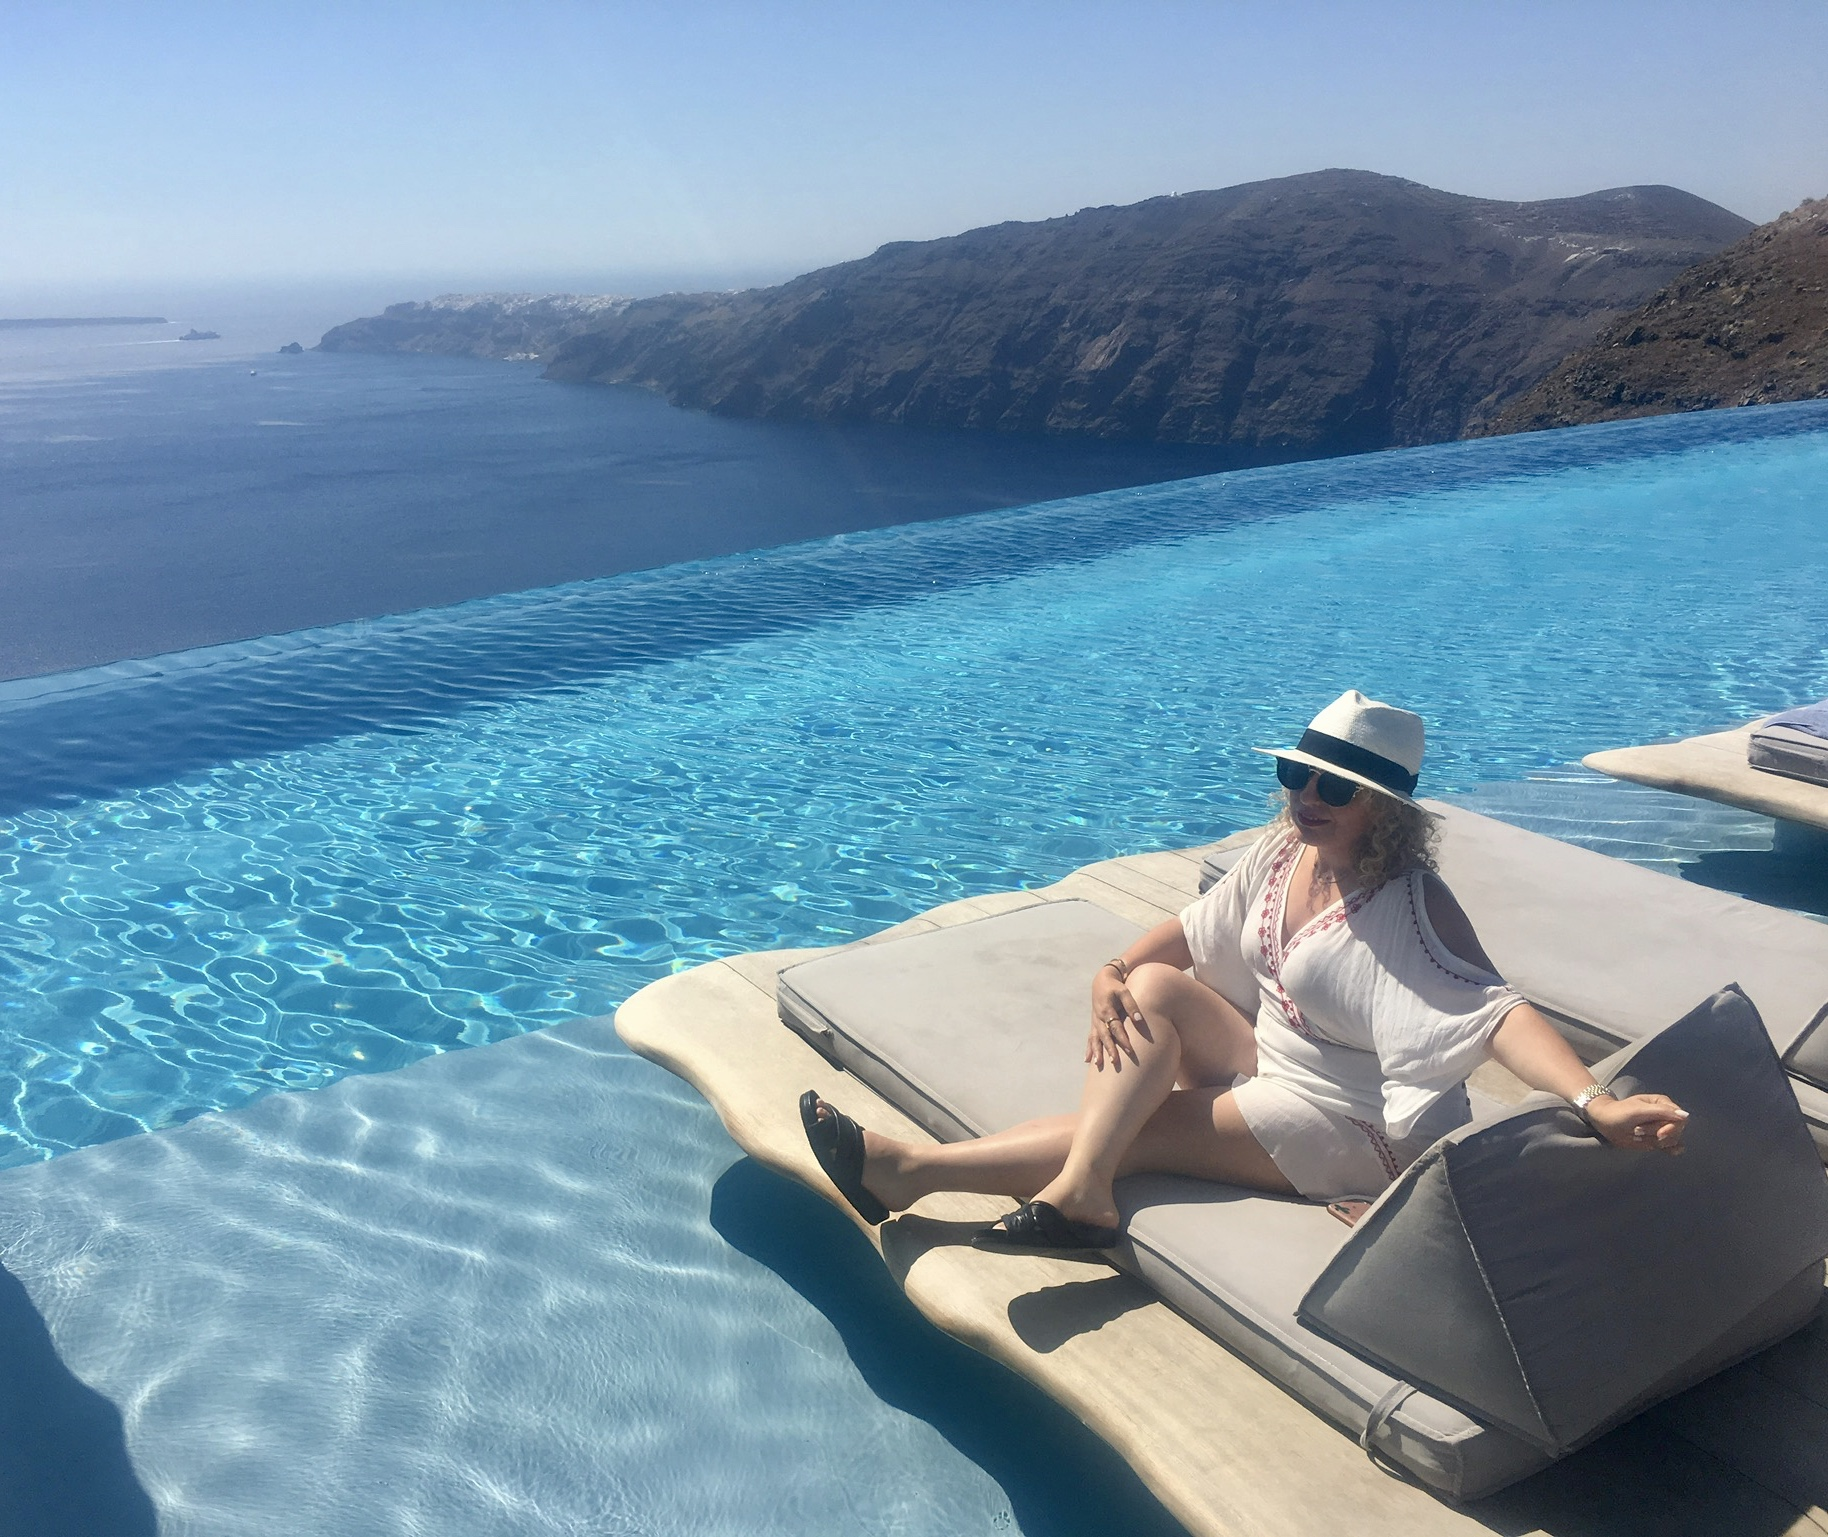 Travel Style by Los Angeles Blogger in Band of Gypsies in Santorini